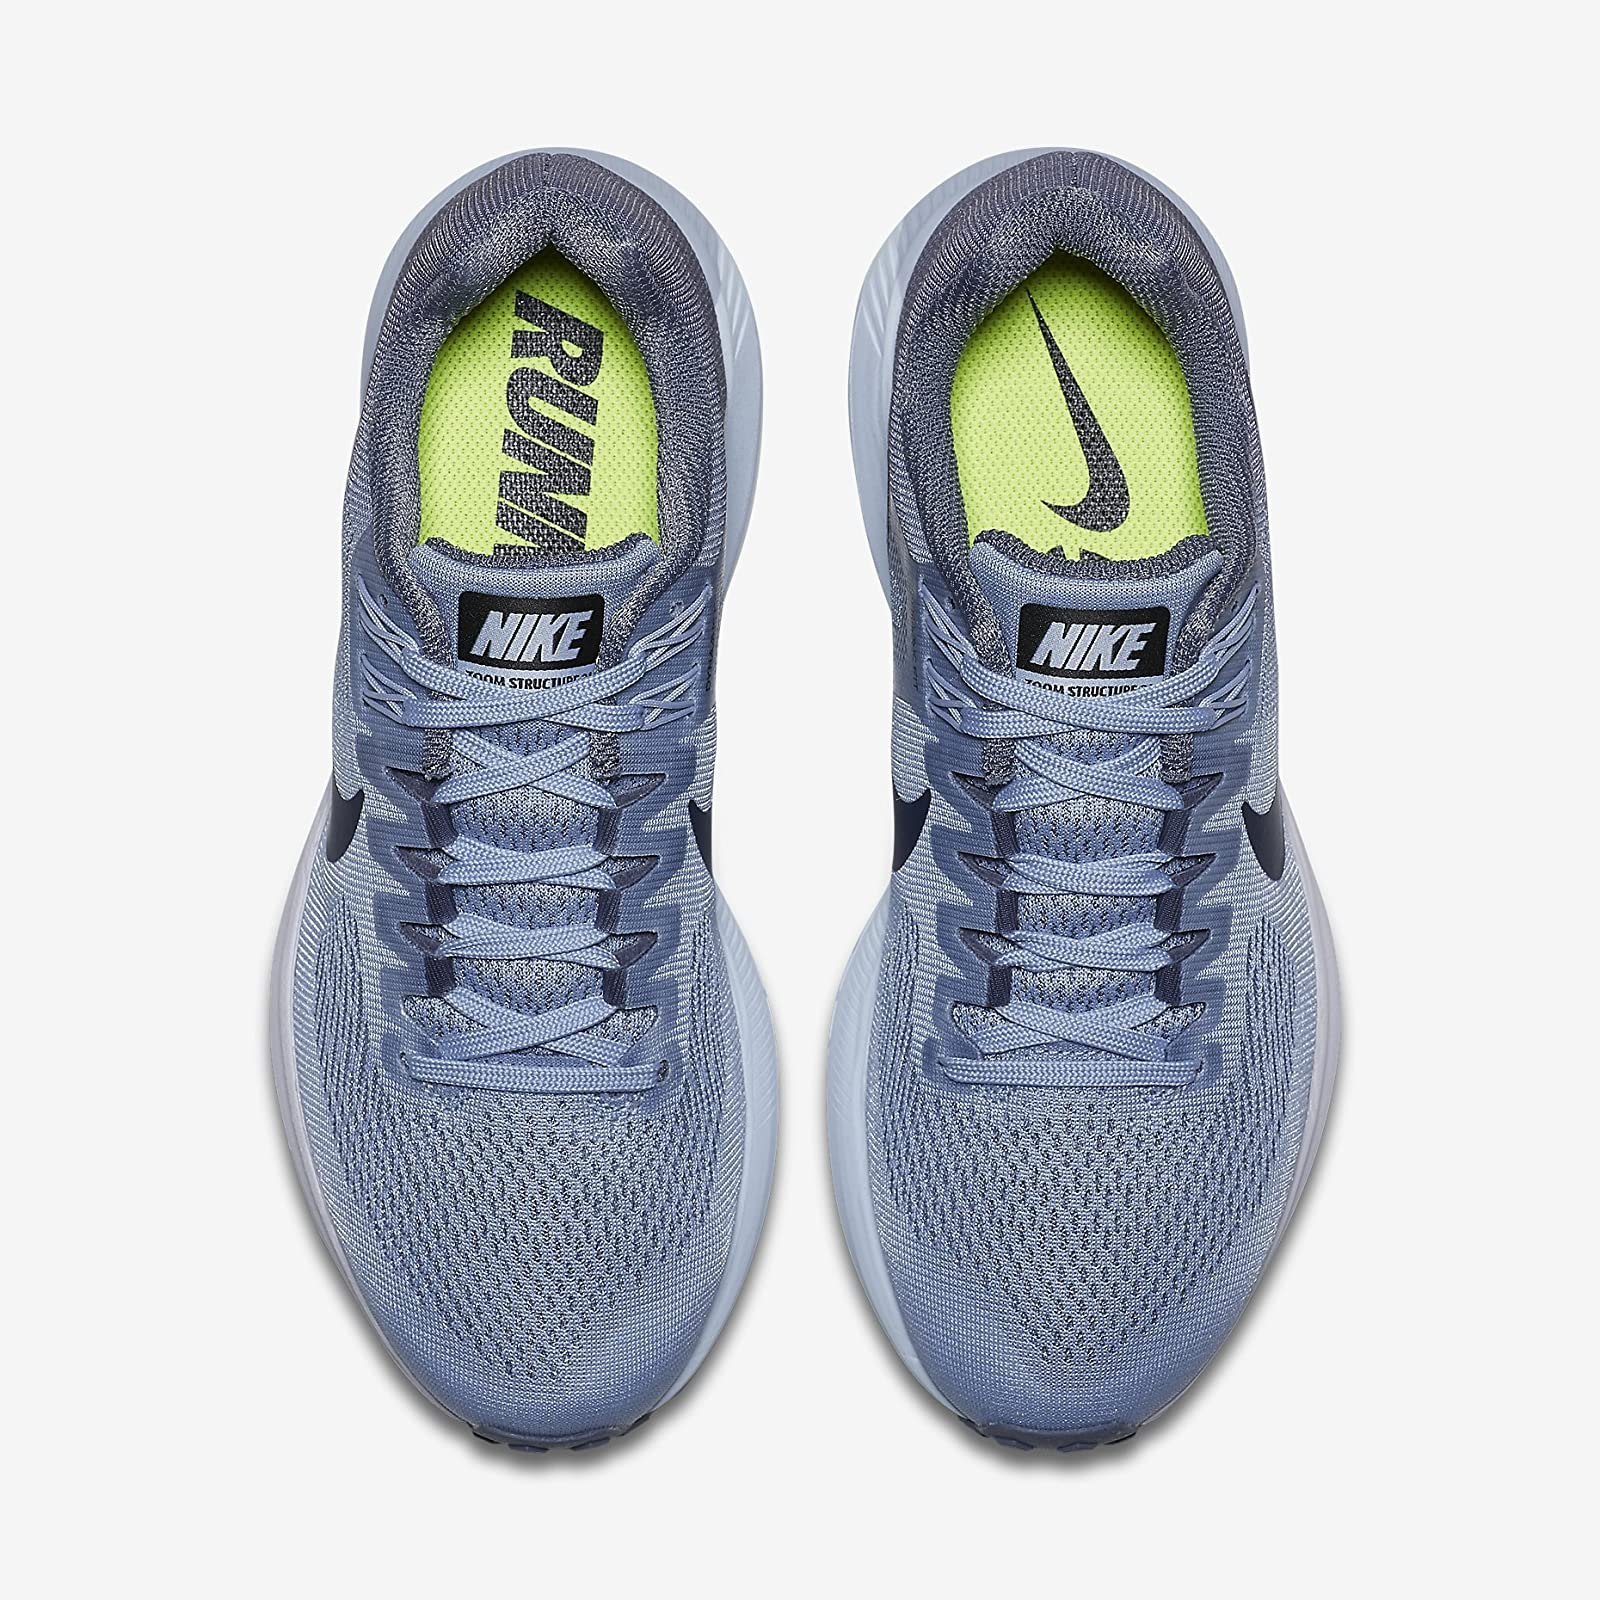 NIKE Women's Air Zoom Structure 21 - 3